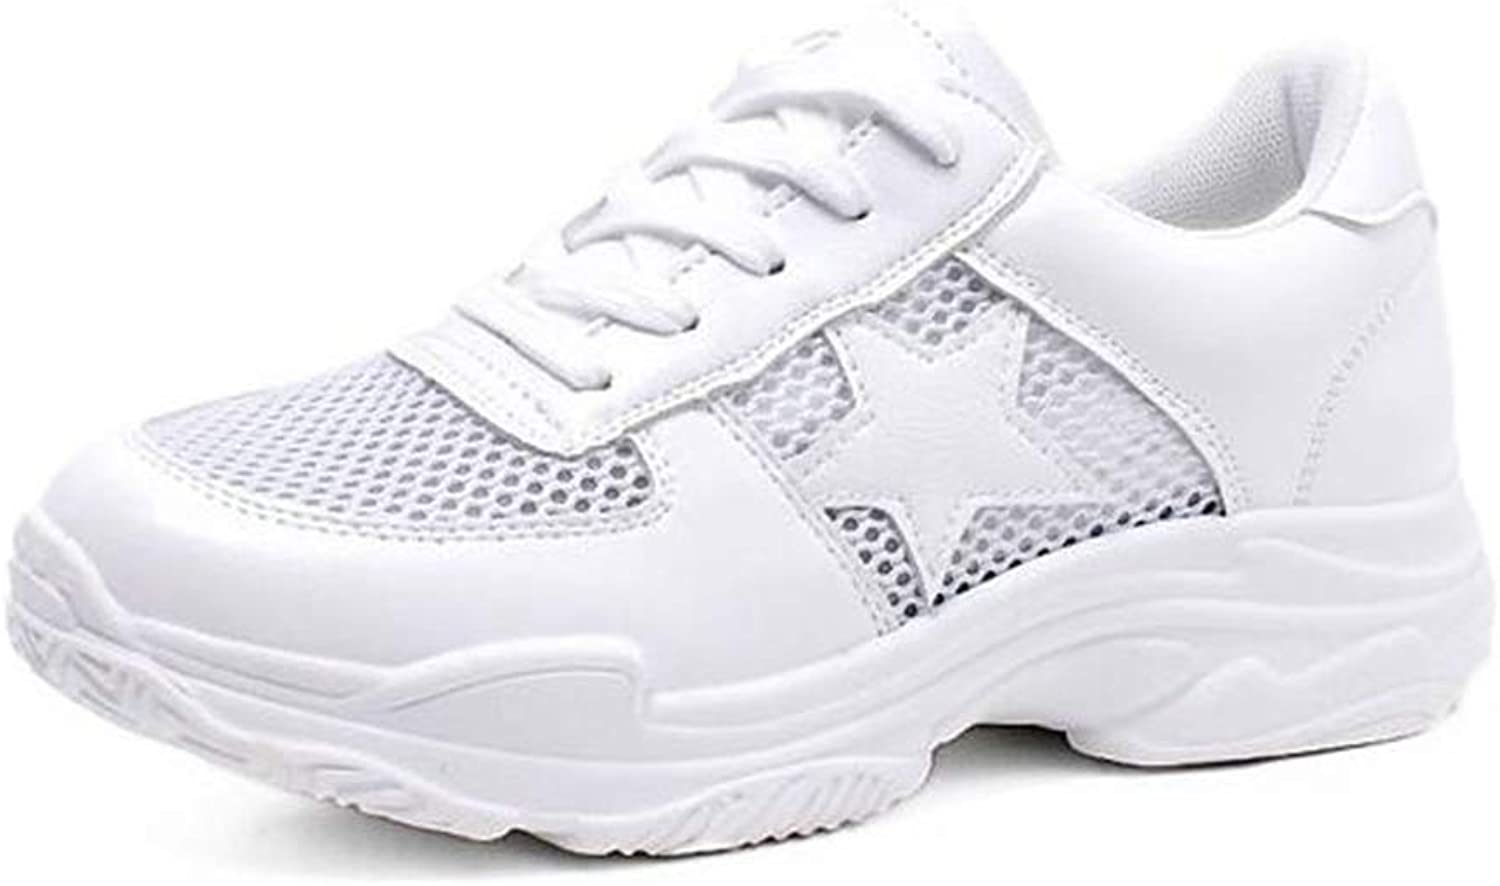 T-JULY New shoes Women White Casual Sneakers Tenis Feminino Sneakers Platform Wedge White shoes Air Mesh shoes